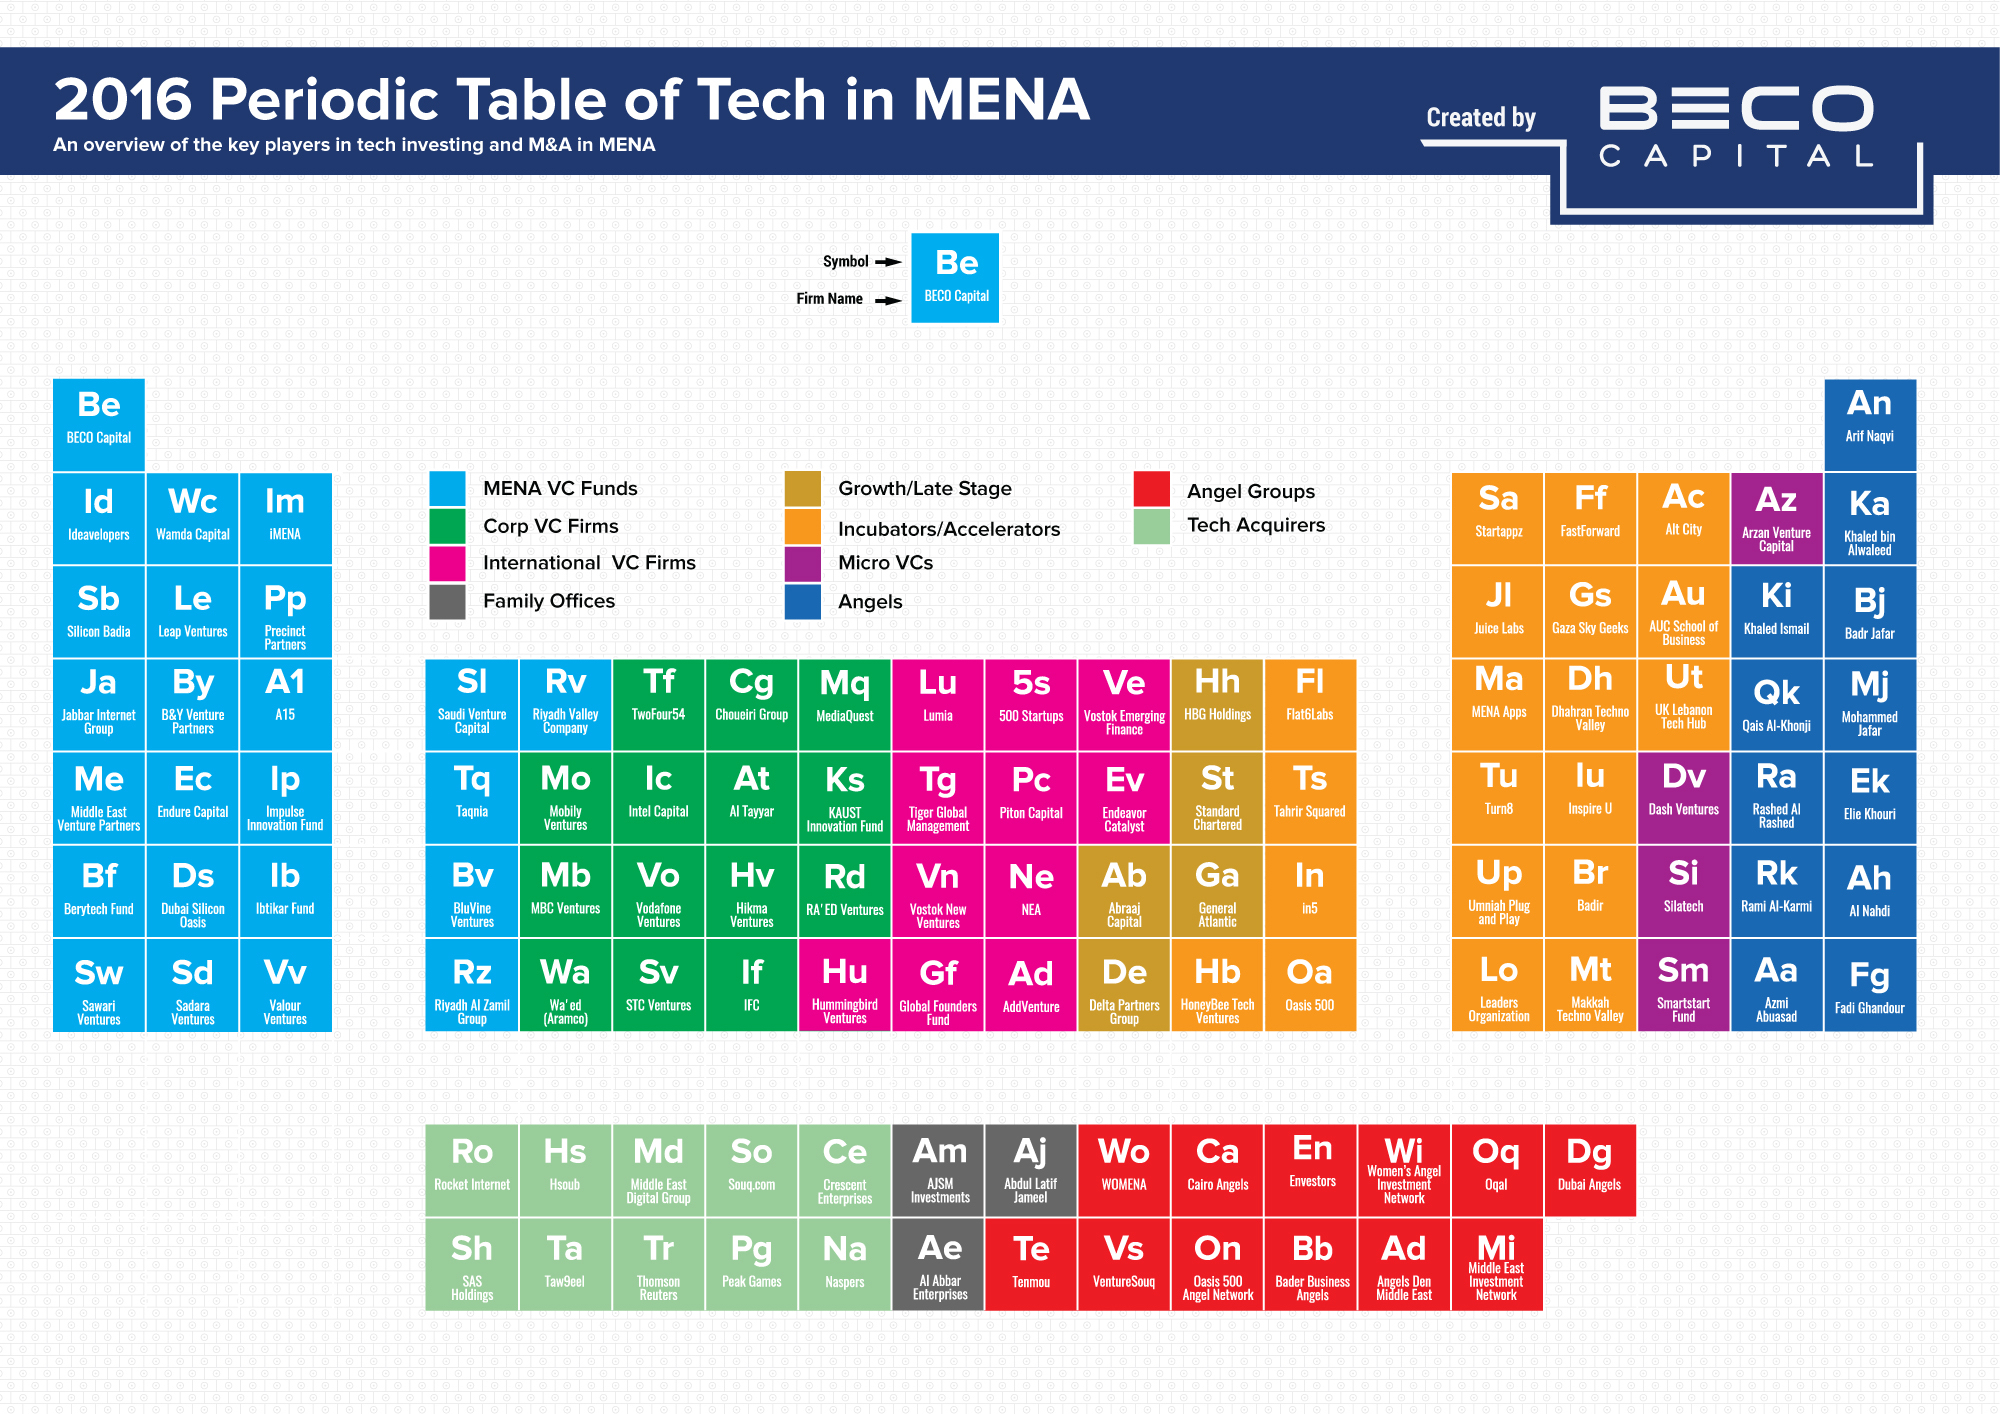 Beco Capital's 2016 periodic table